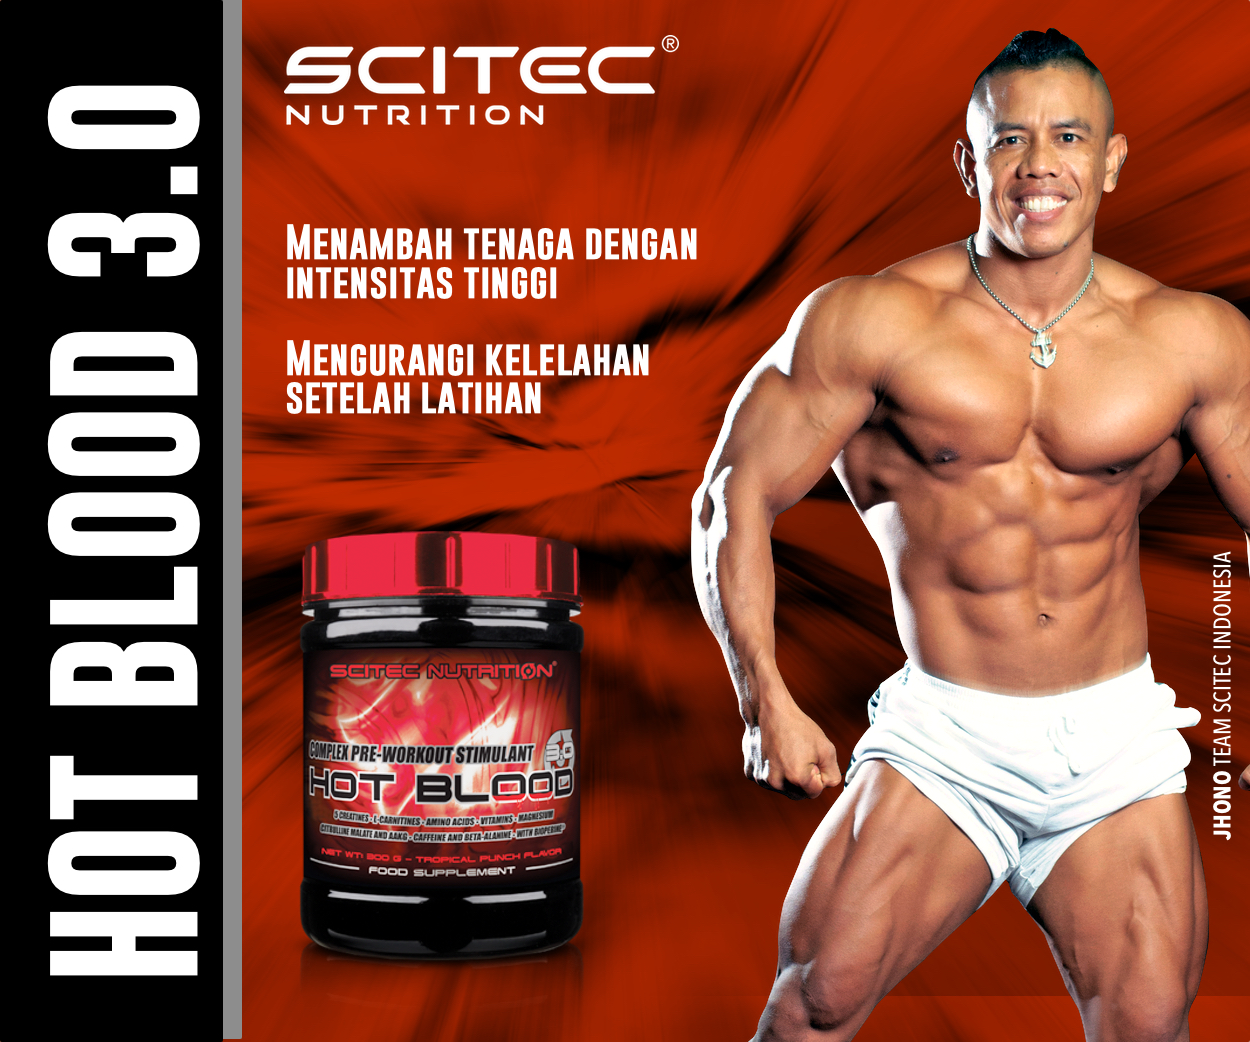 Scitec